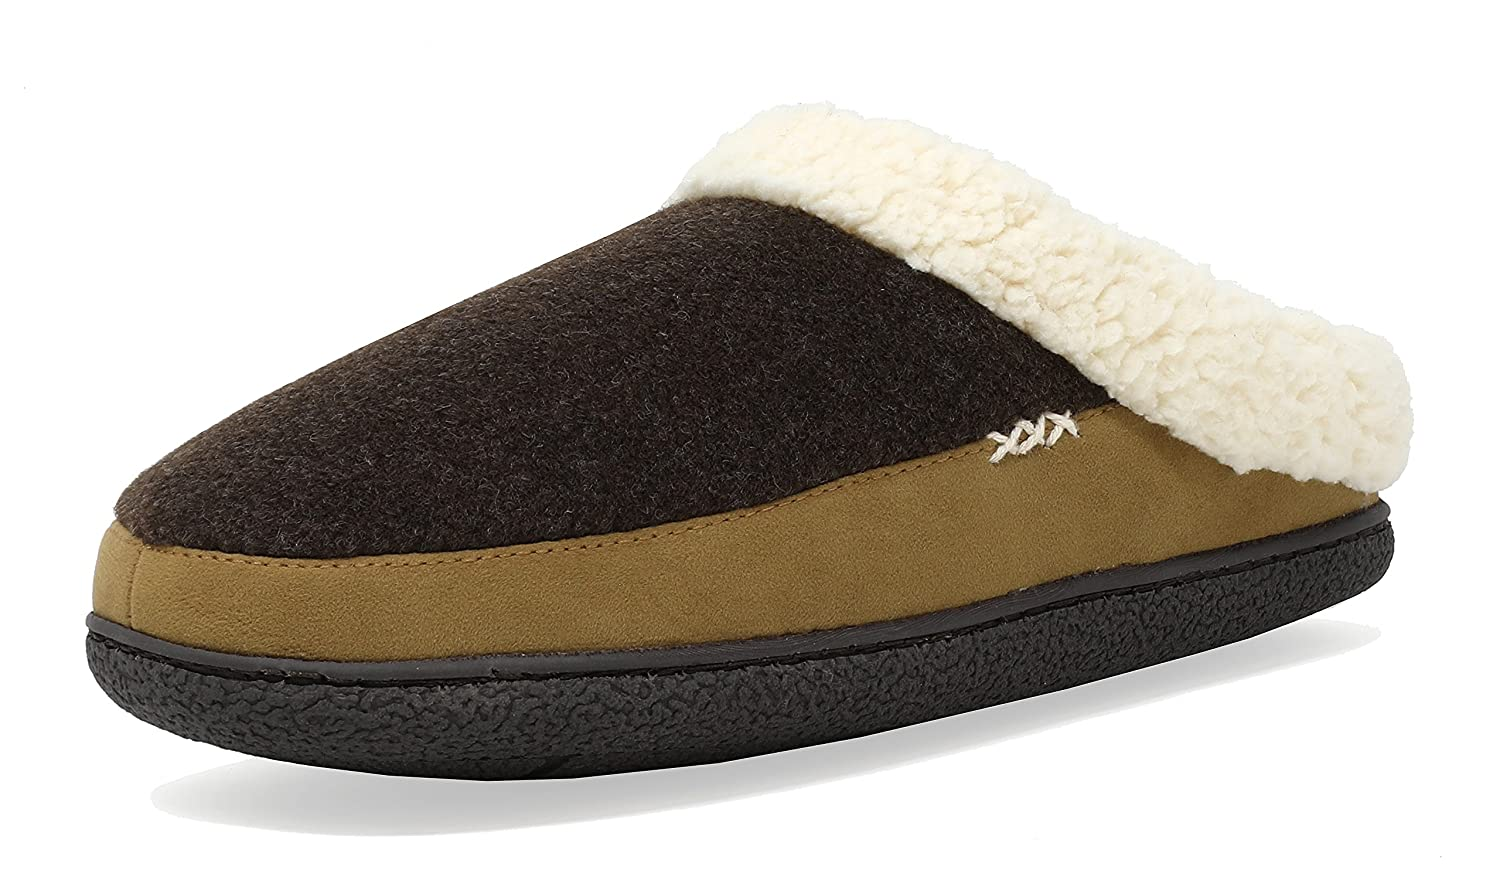 DREAM PAIRS Men's Aidan House Slippers Shoes